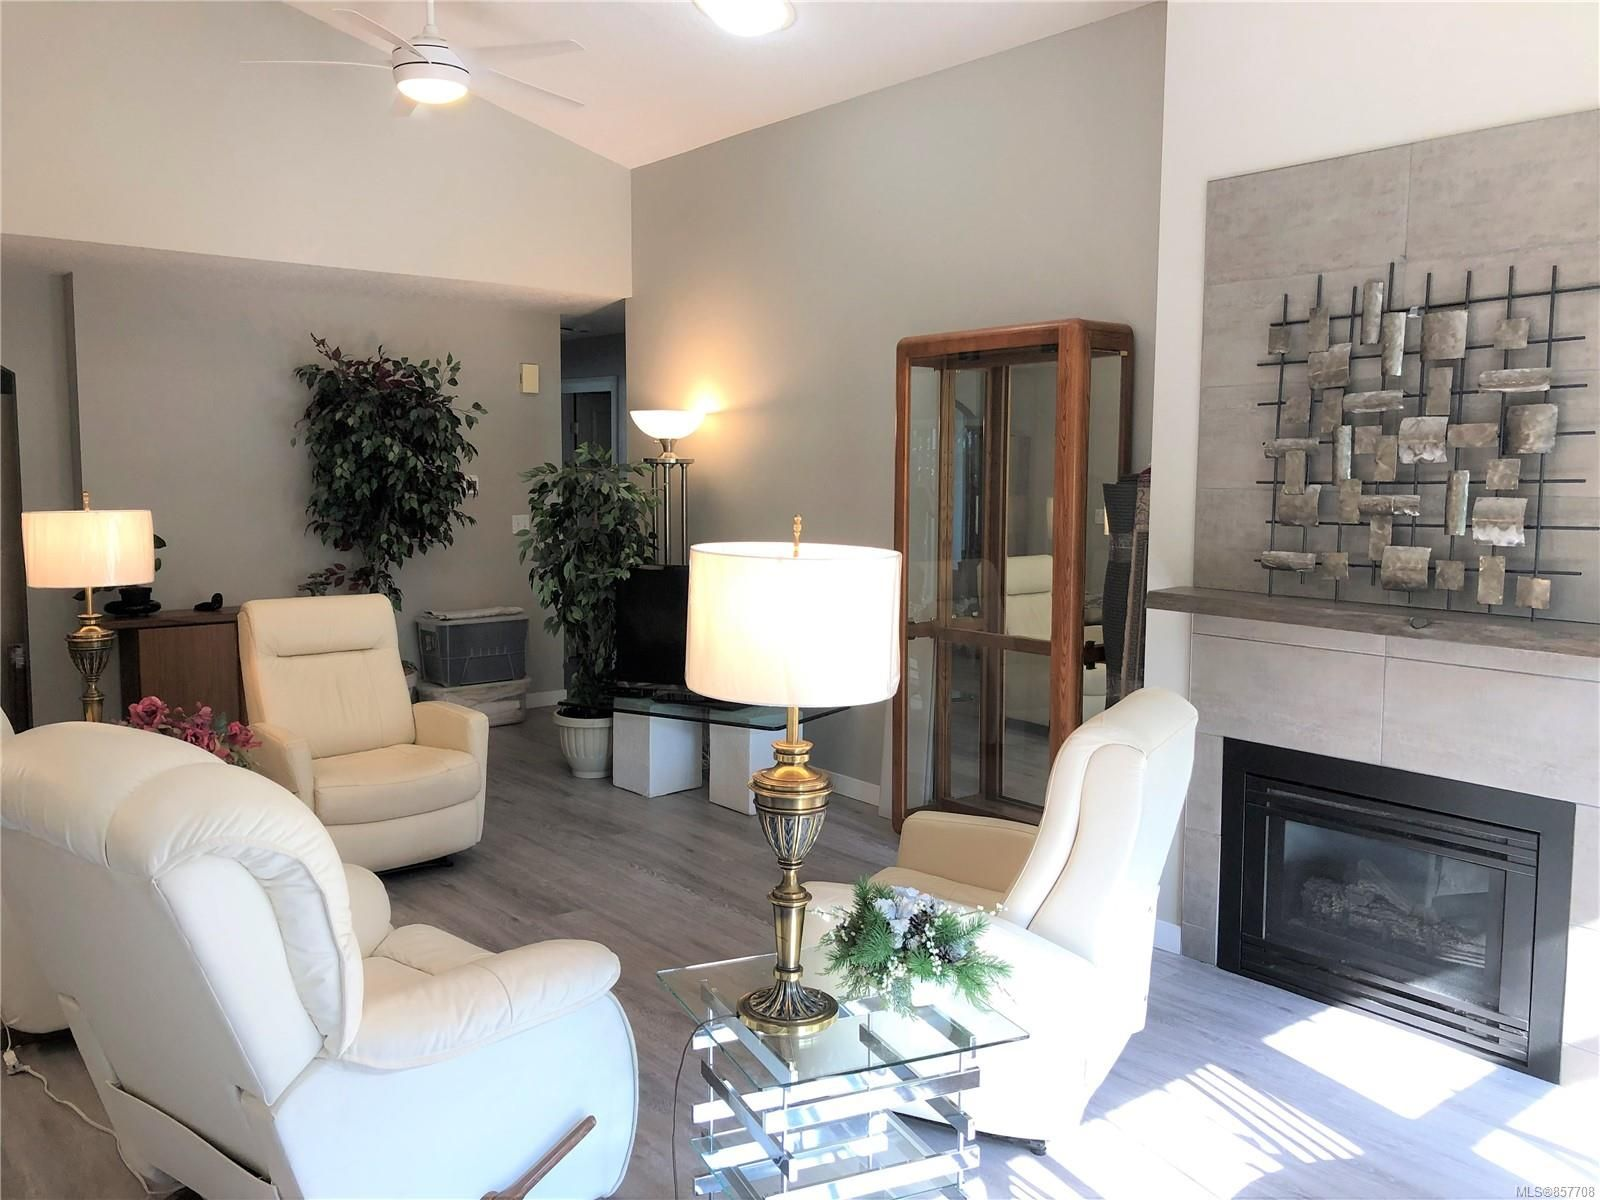 Photo 6: Photos: 6151 Bellflower Way in : Na North Nanaimo Row/Townhouse for sale (Nanaimo)  : MLS®# 857708